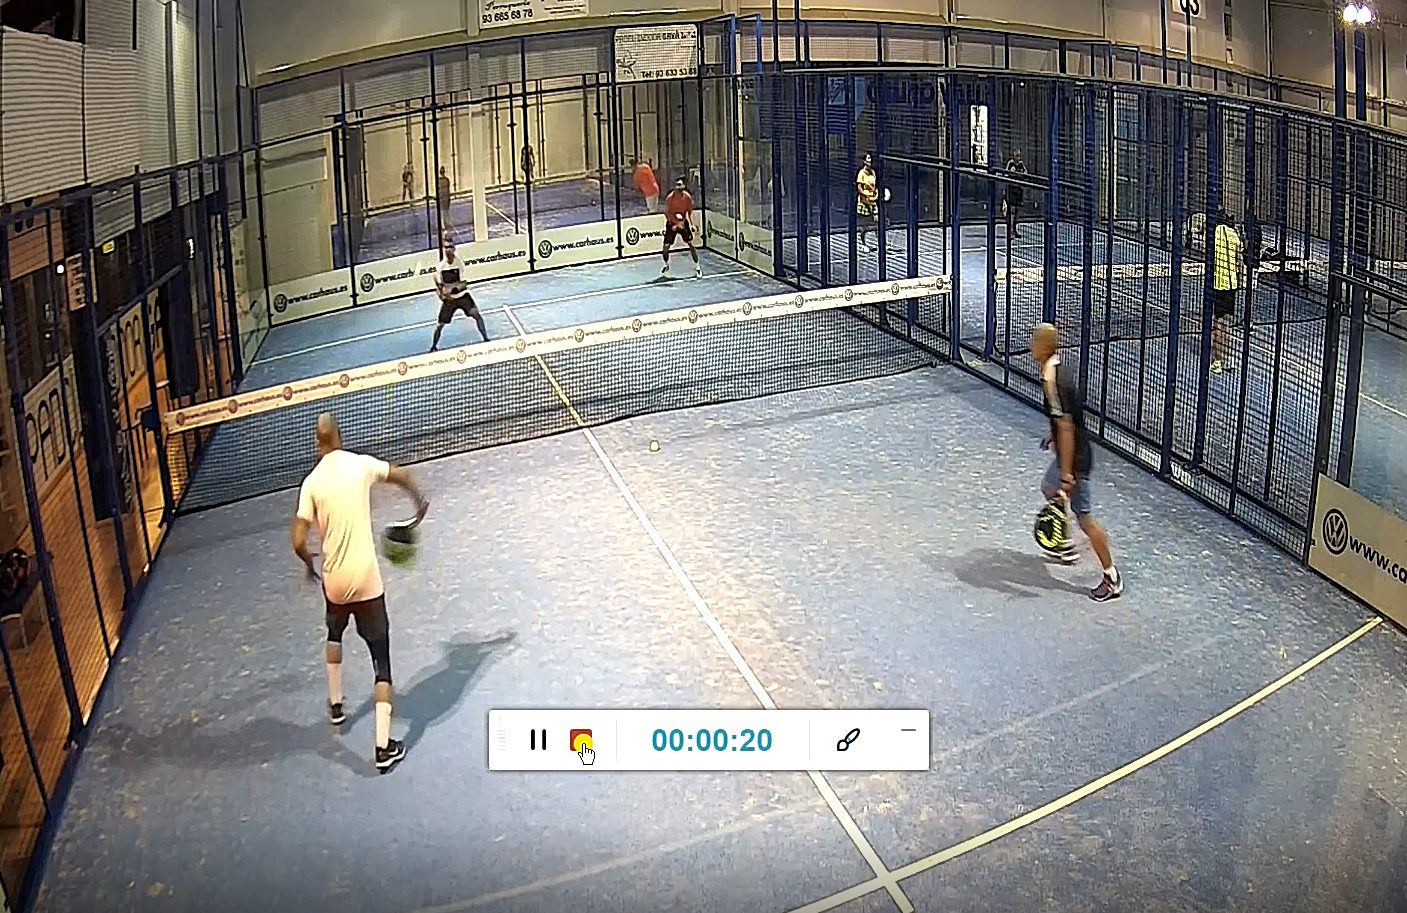 stage padel in video - OSS Barcelona